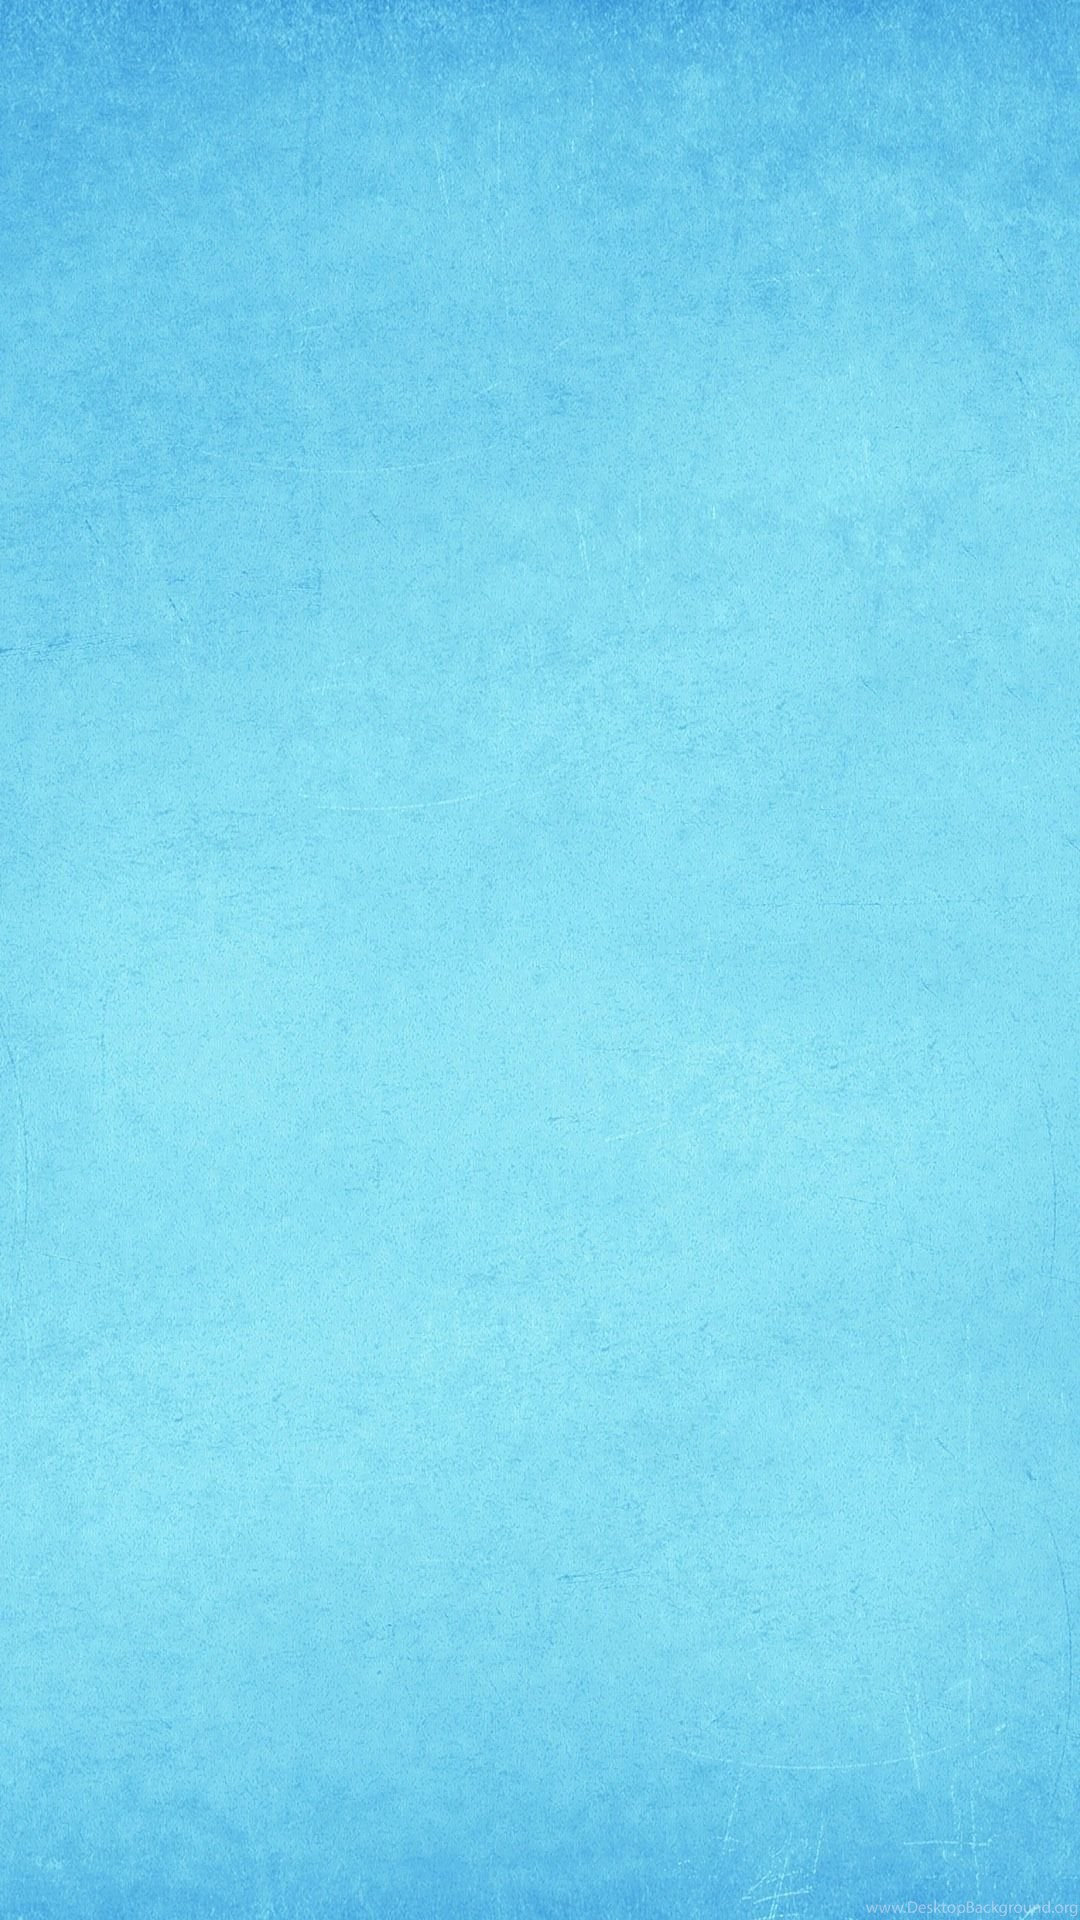 texture wallpapers for mobiles: Light Blue Texture Mobile Wallpapers 6482 Desktop Background